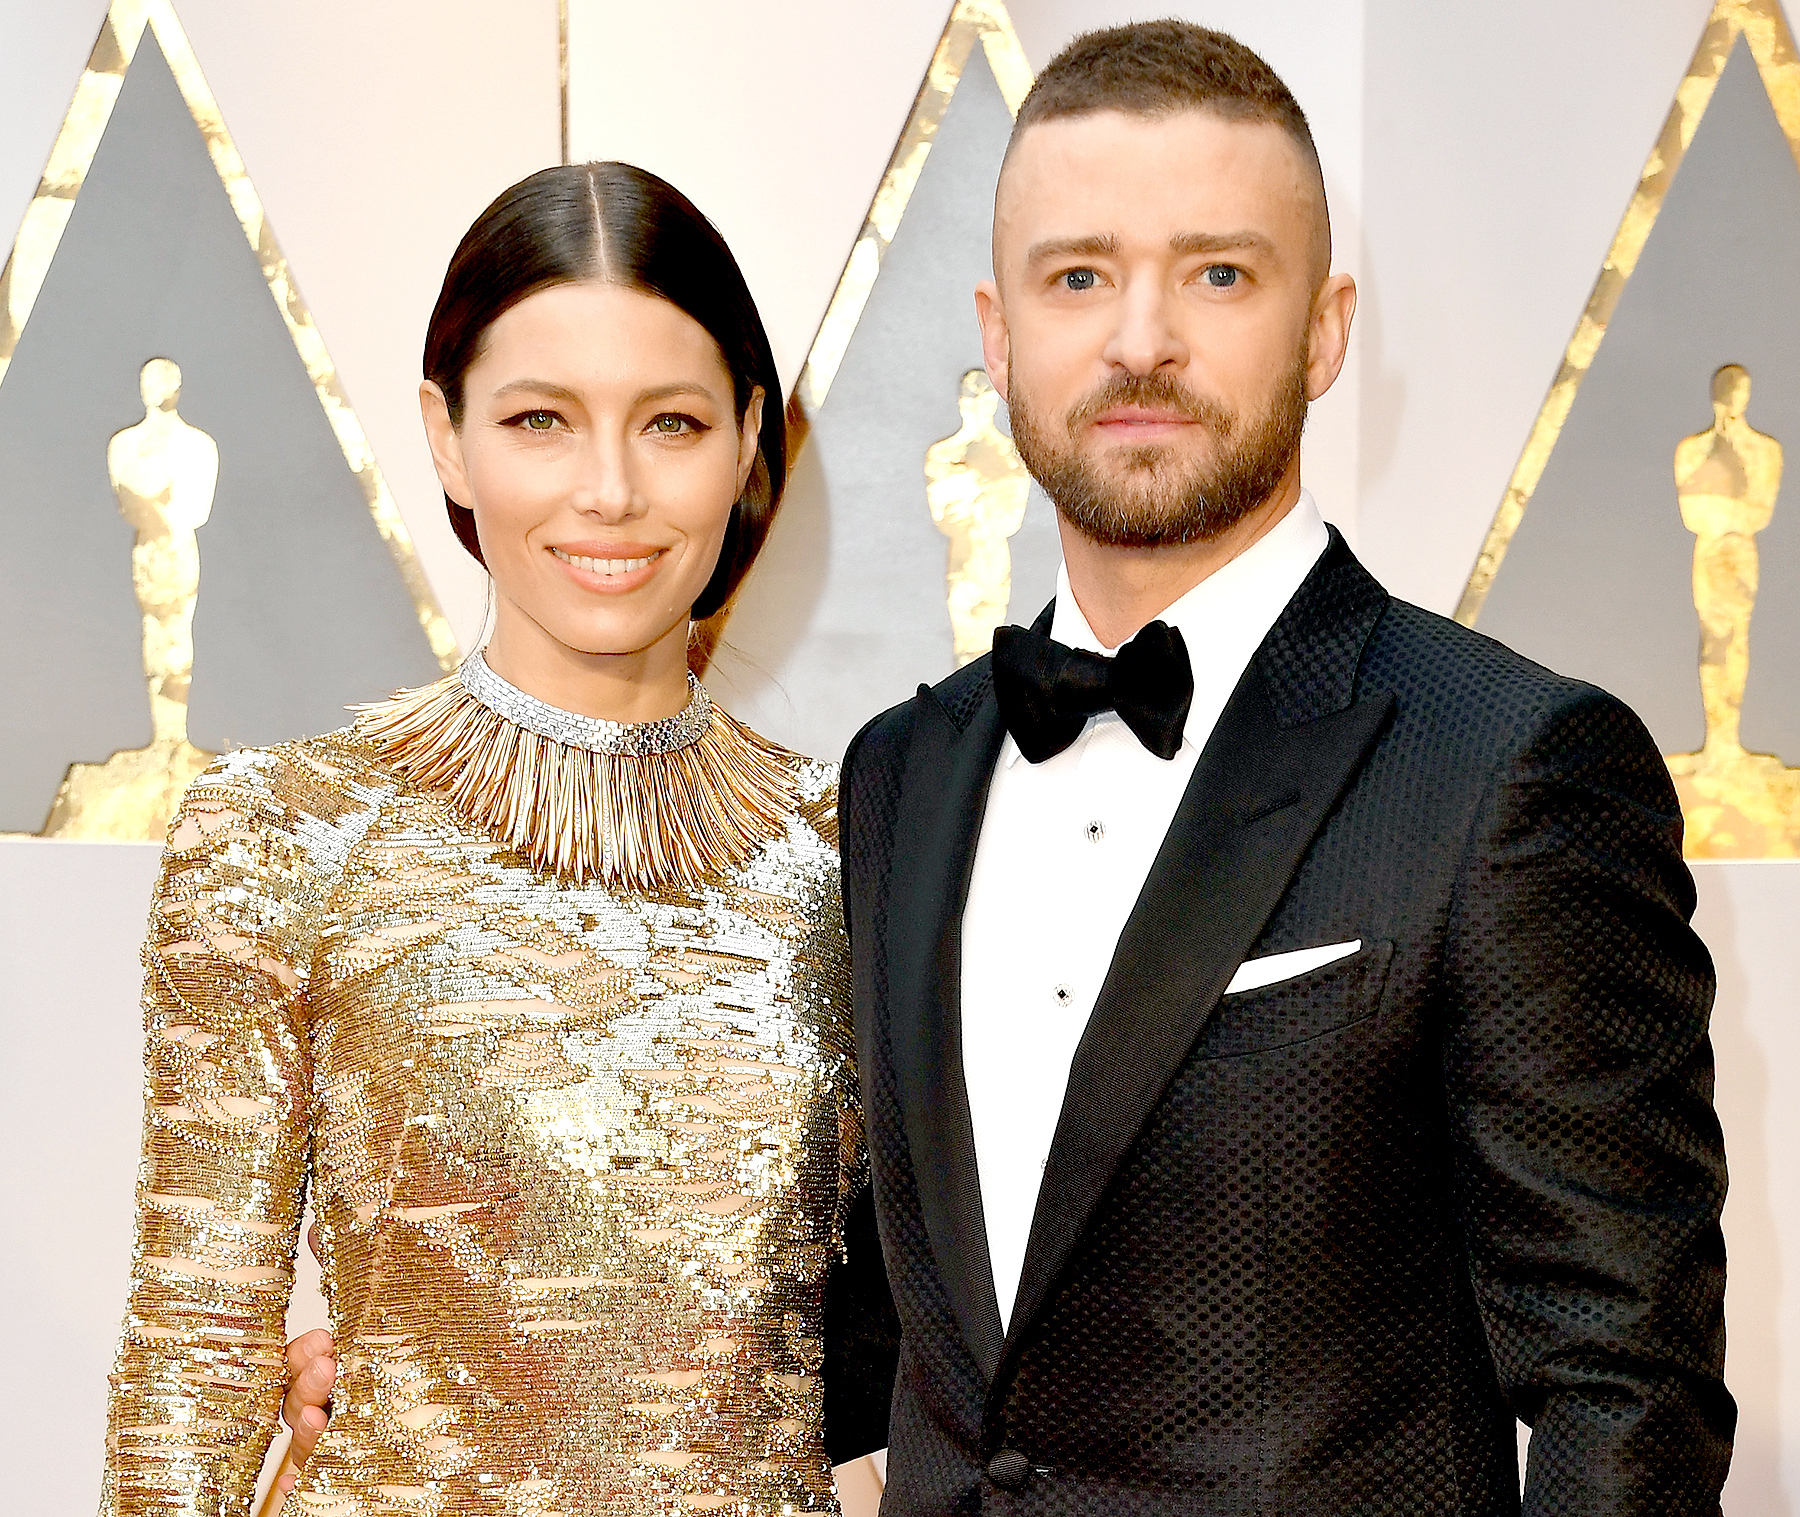 Jessica Biel and Justin Timberlake attend the 89th Annual Academy Awards at Hollywood & Highland Center on February 26, 2017 in Hollywood, California.